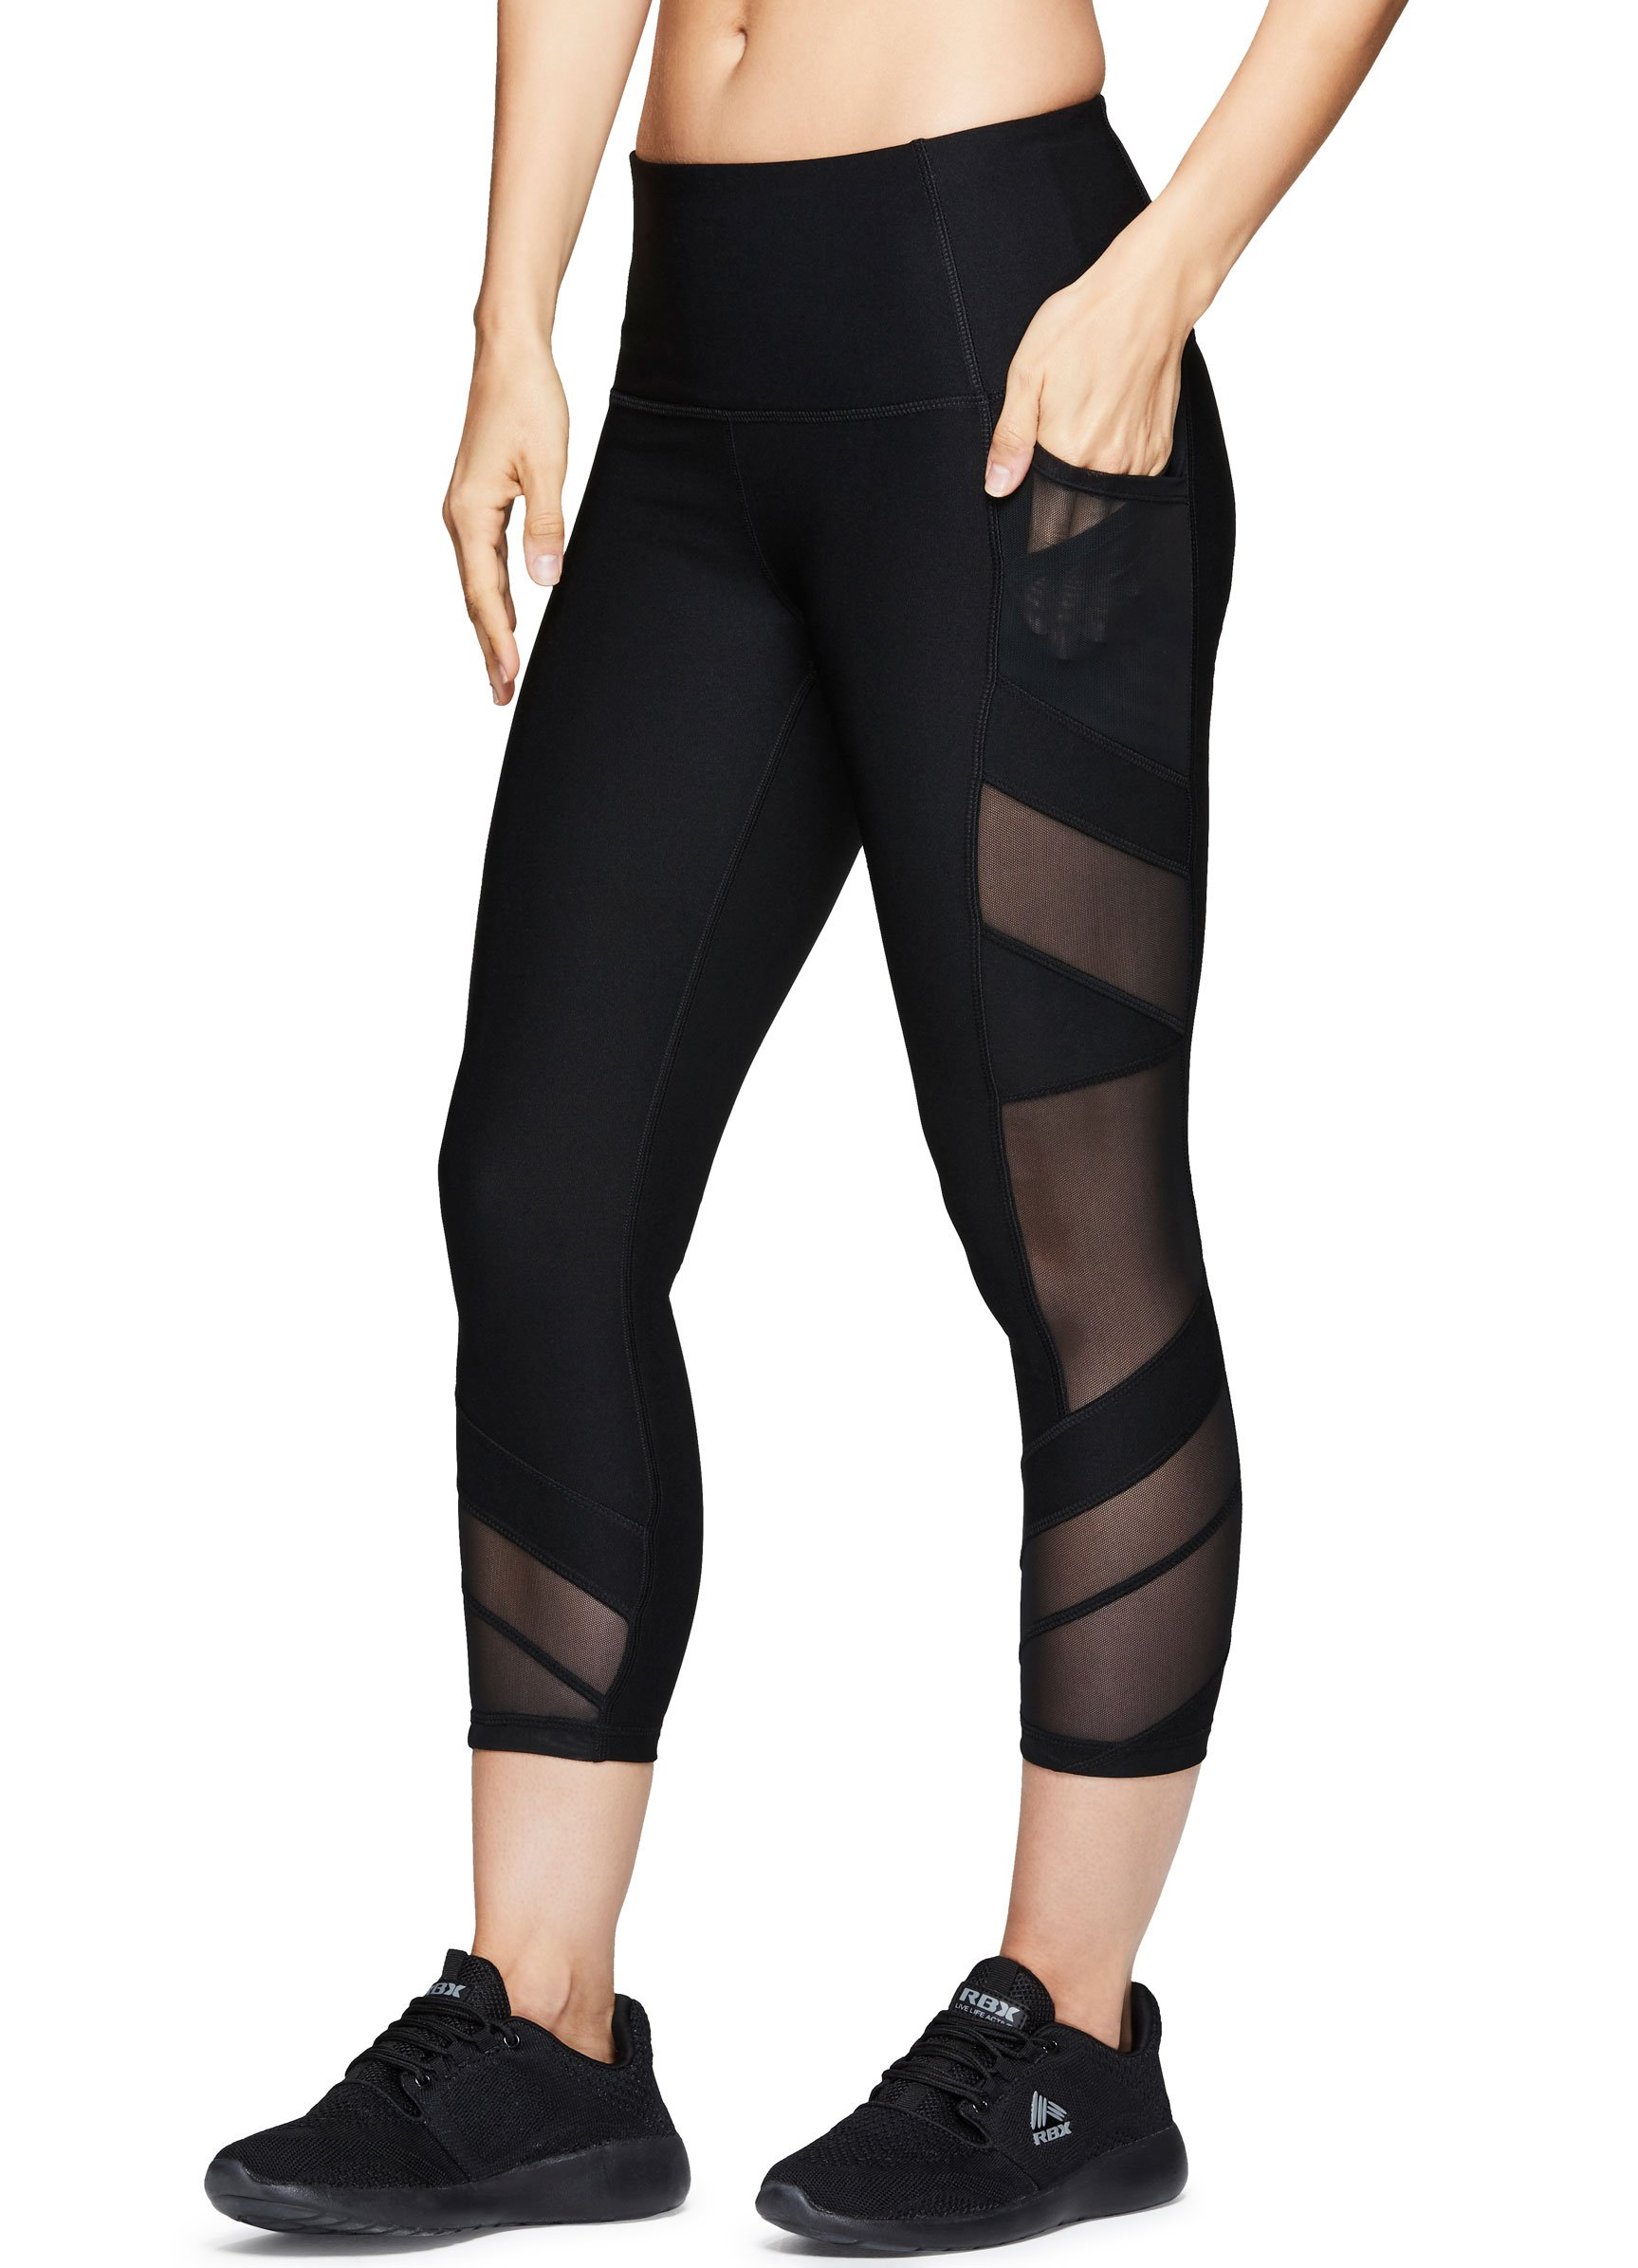 231f71ab72 Galleon - RBX Active Women's Workout Gym Yoga Athletic Leggings Black Multi  Combo S